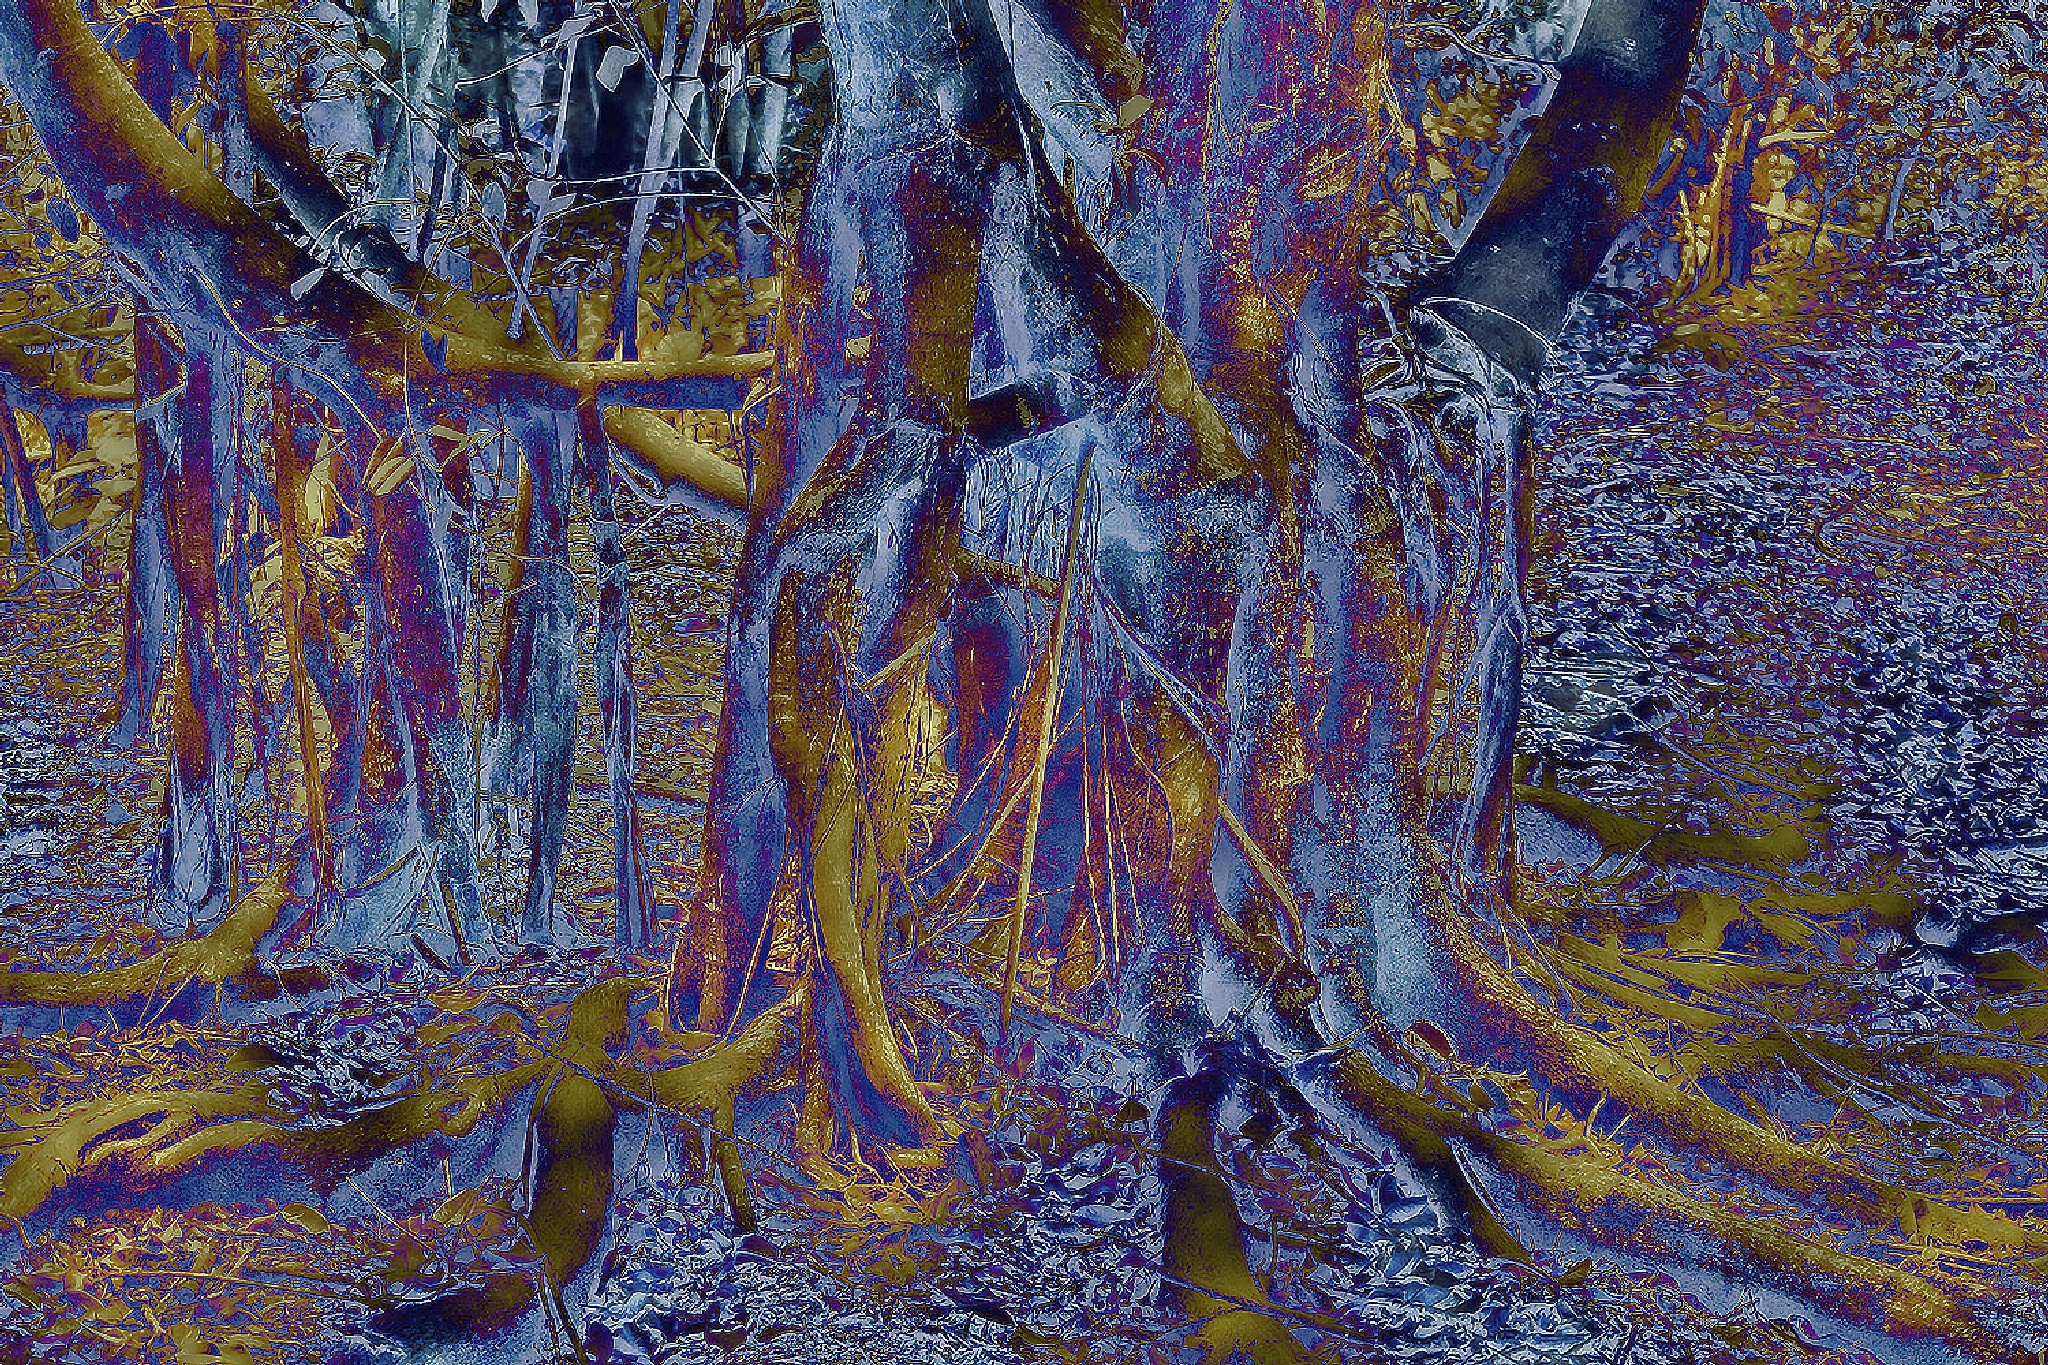 Tree Root Abstract by Lynnie taylor